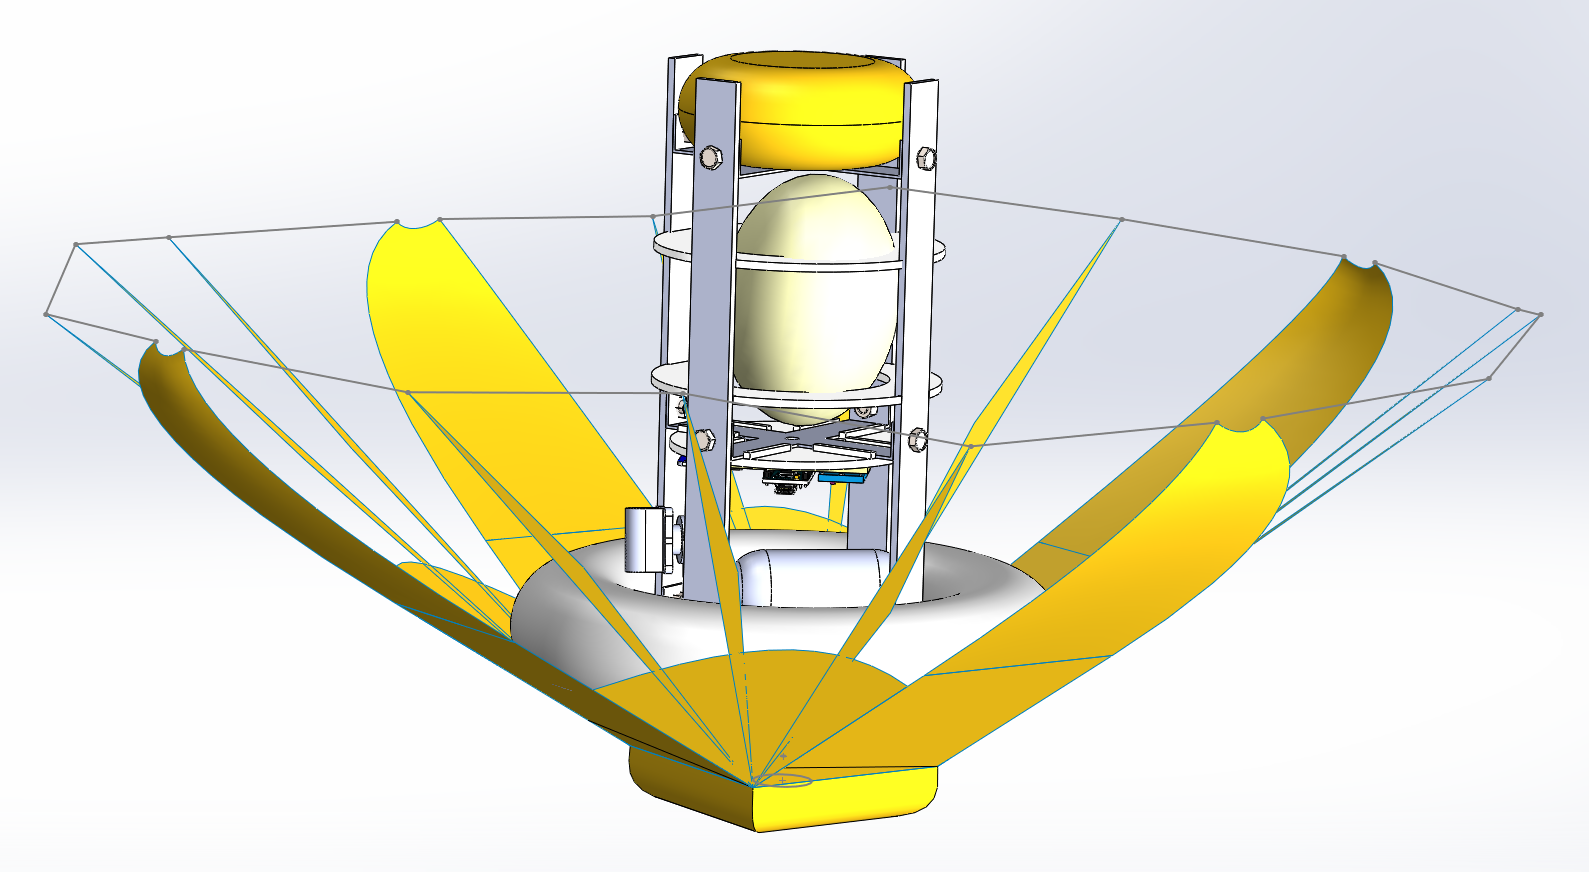 First CAD model of CanSat